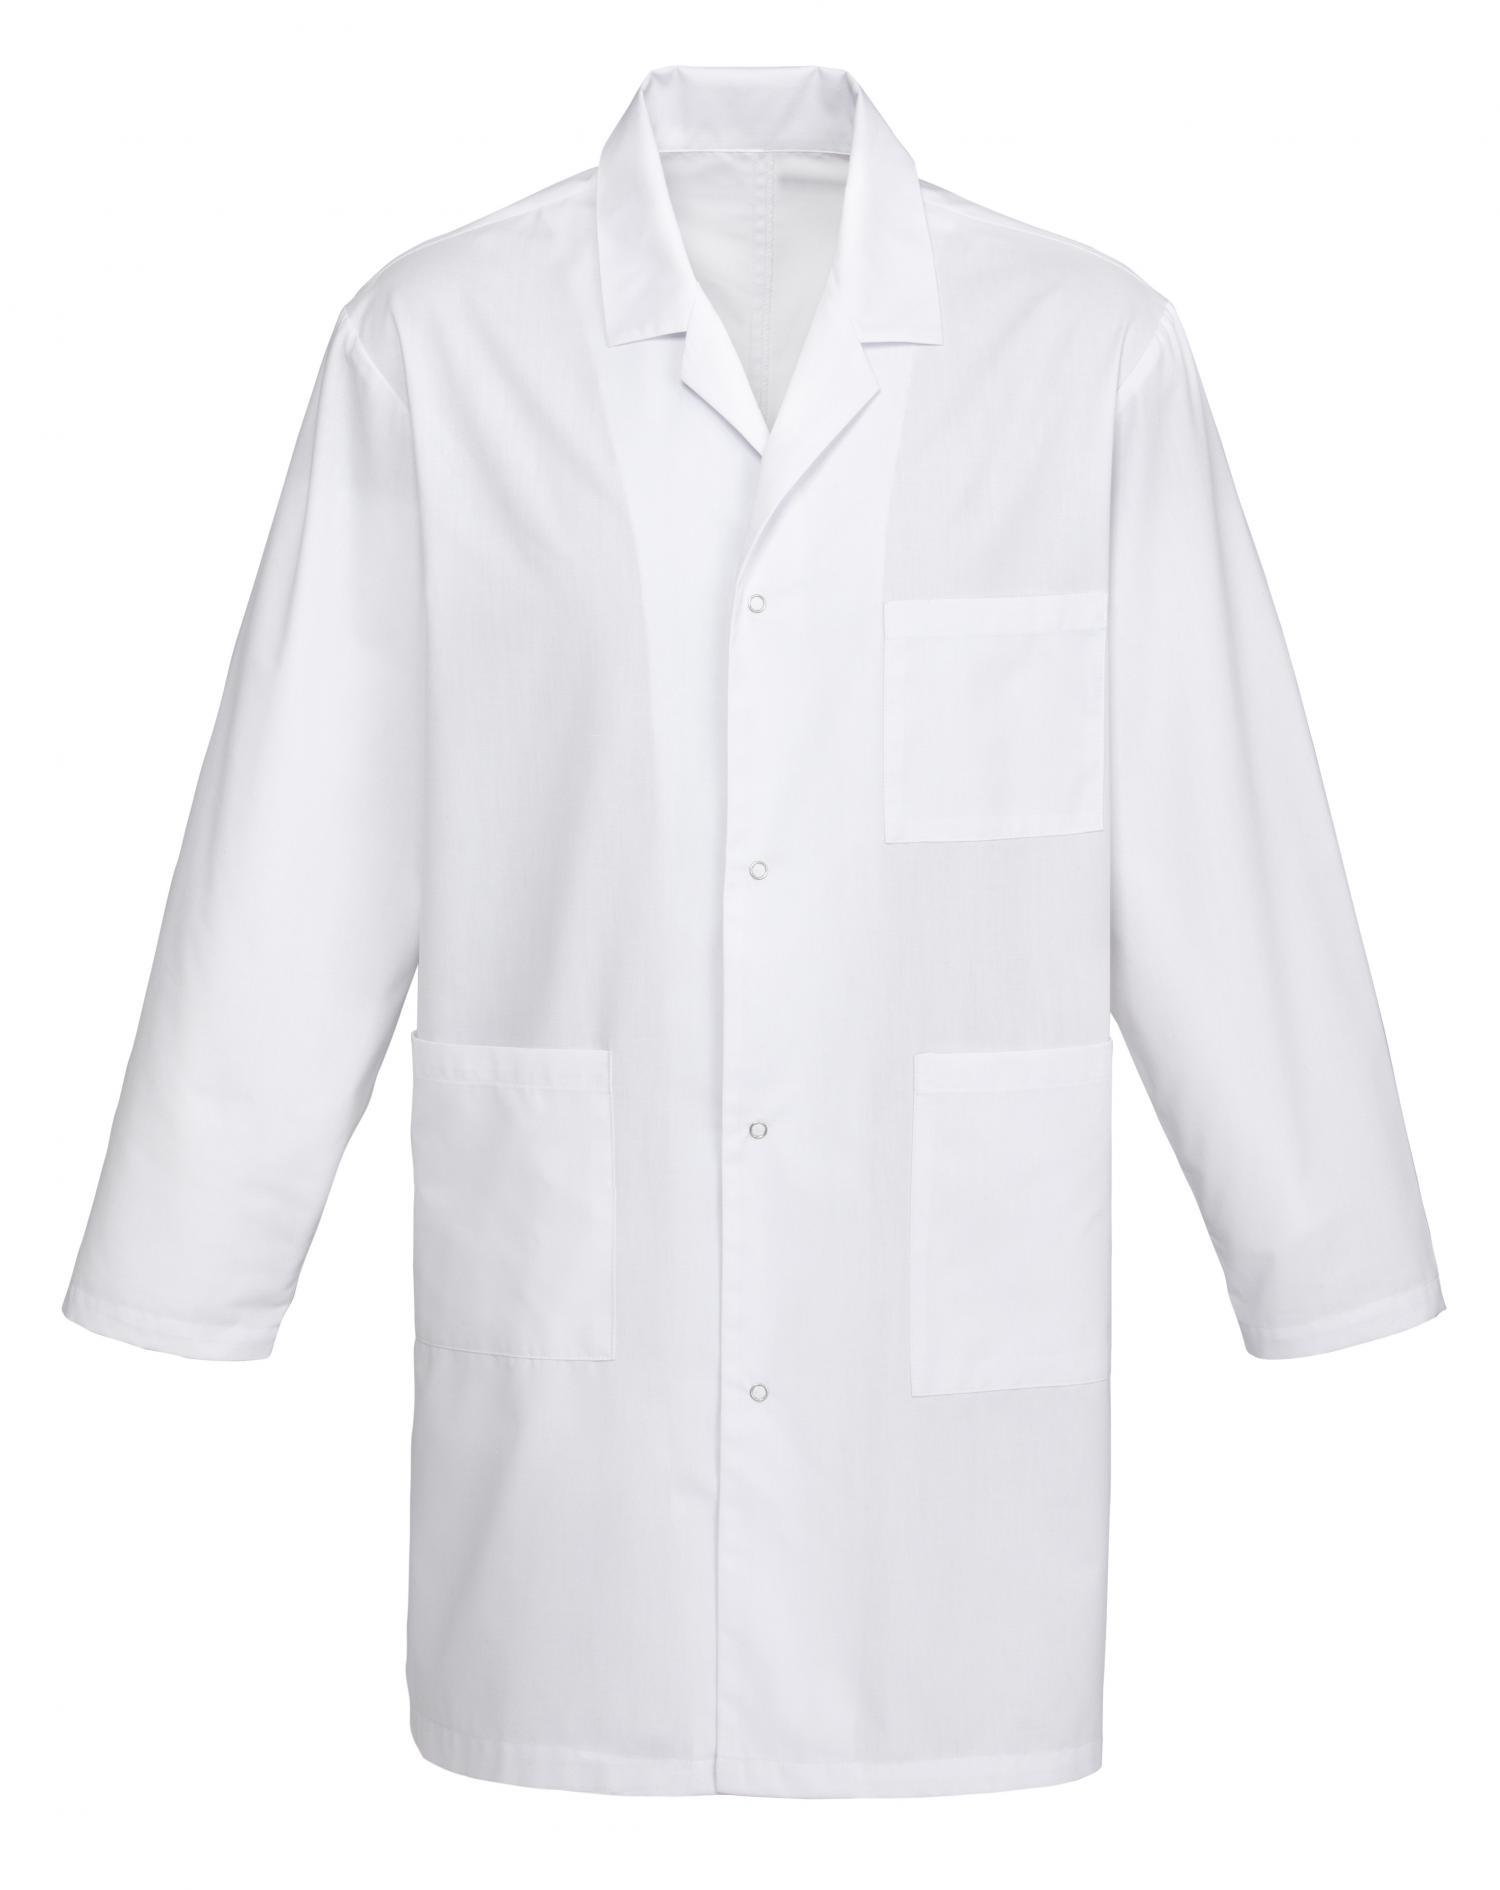 Classic Lab Coat - Healthcare - The Uniform Factory